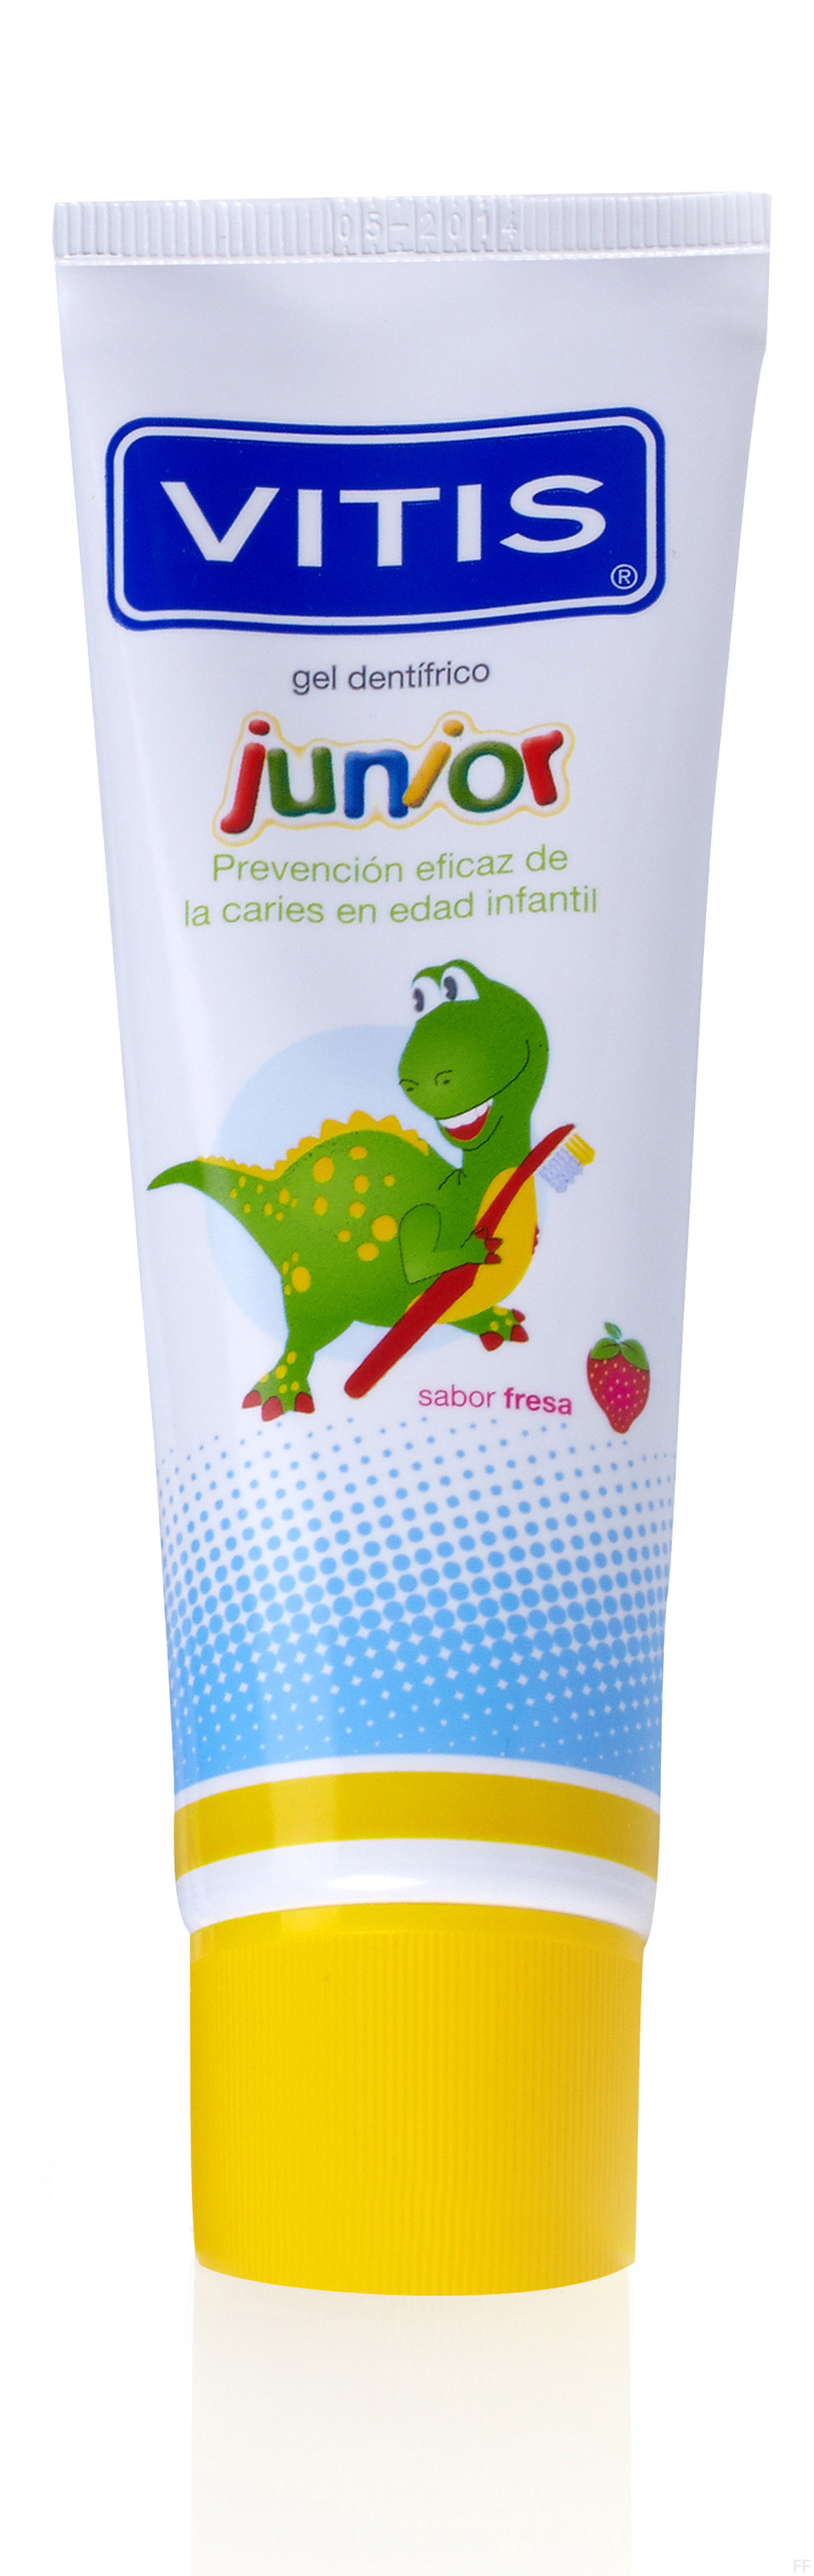 Vitis Junior Gel Dentífrico 75 ml